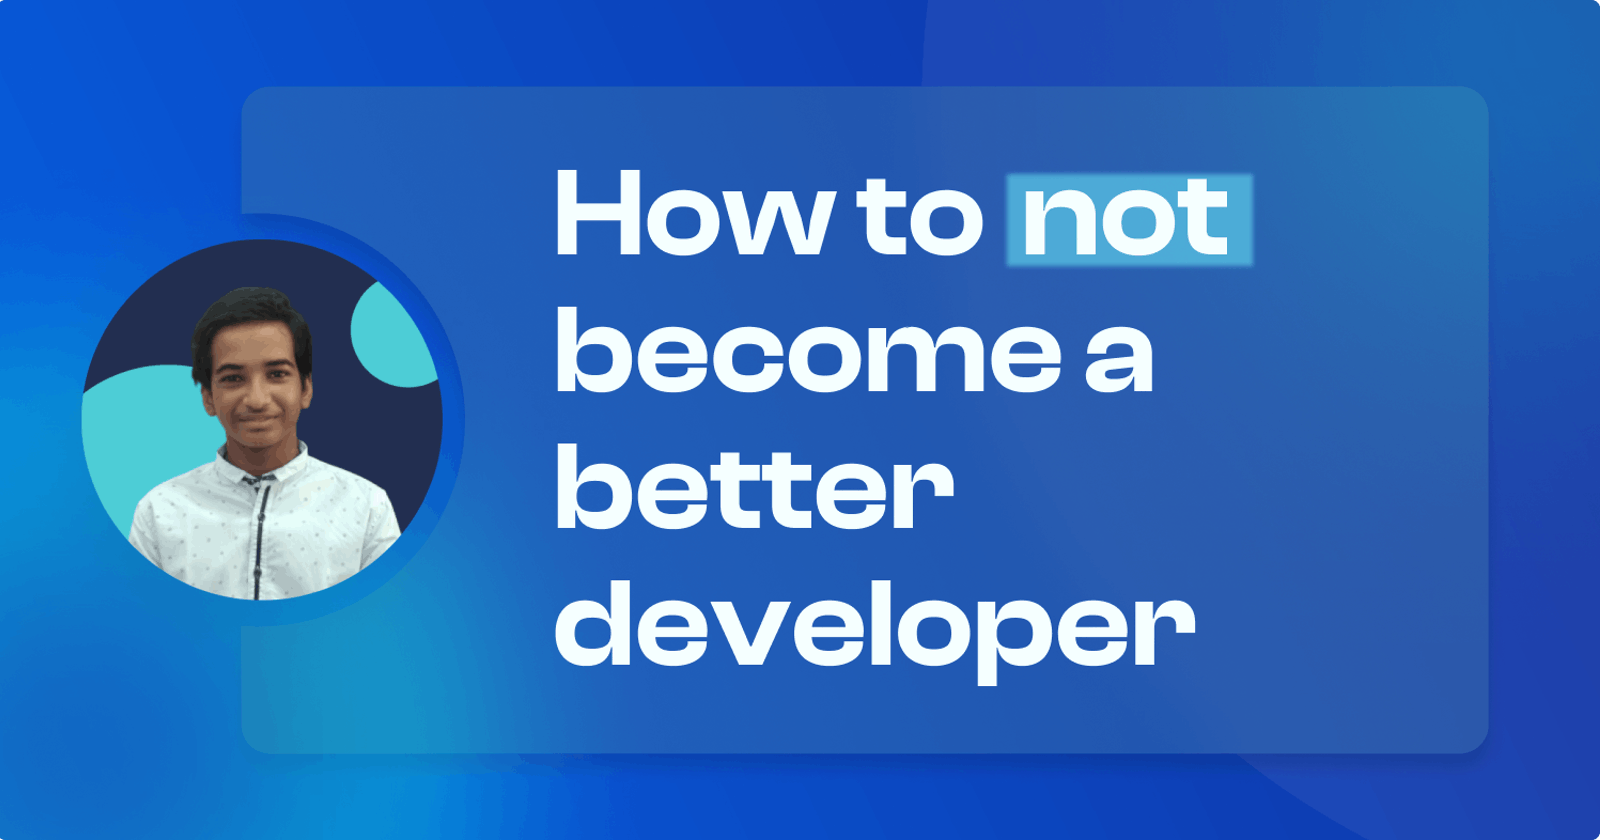 How to not become a better developer